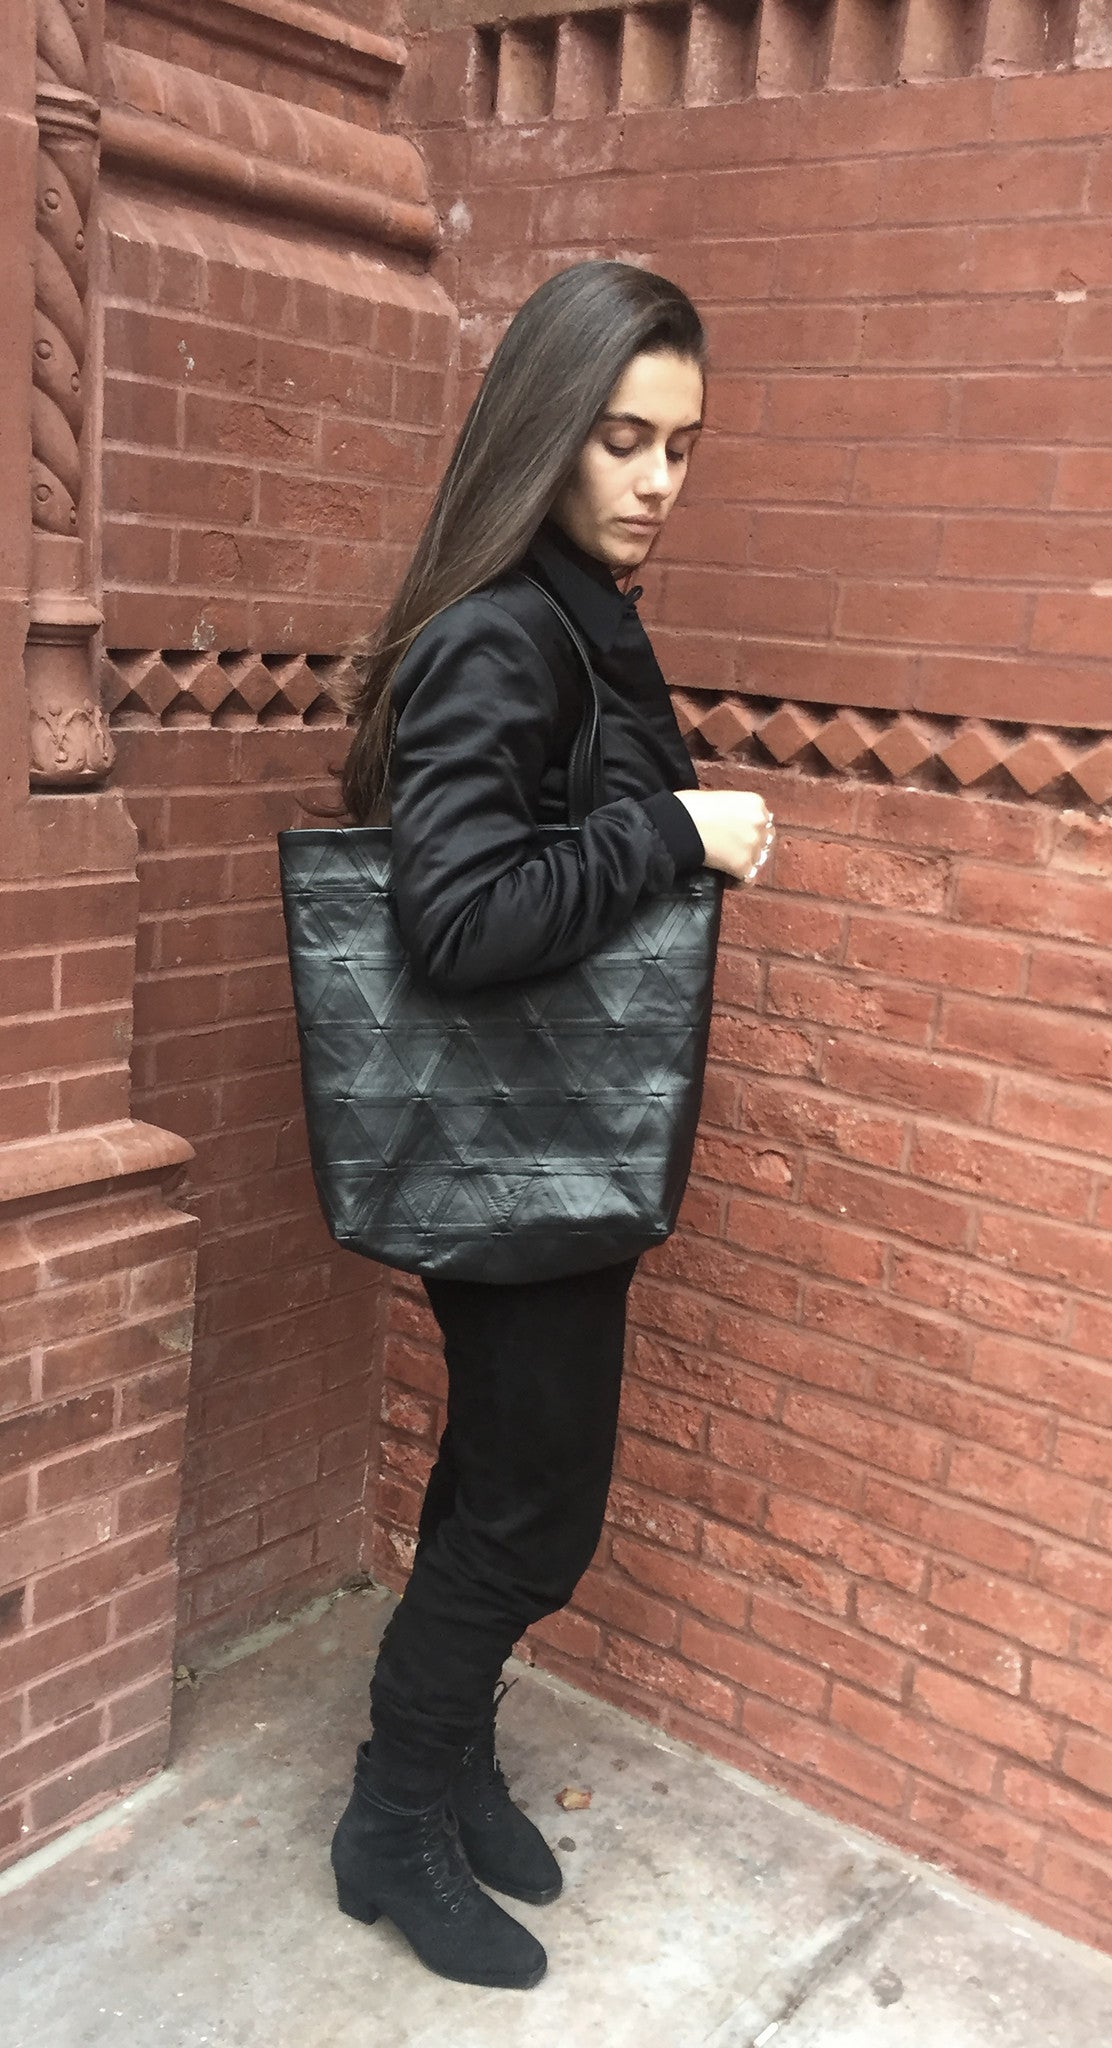 Black Leather Triangle Patchwork Tote Wendy Nichol Designer Handbag Purse Tote Handmade in NYC New York City Strong durable Handle interior pocket Triangles High Quality Leather